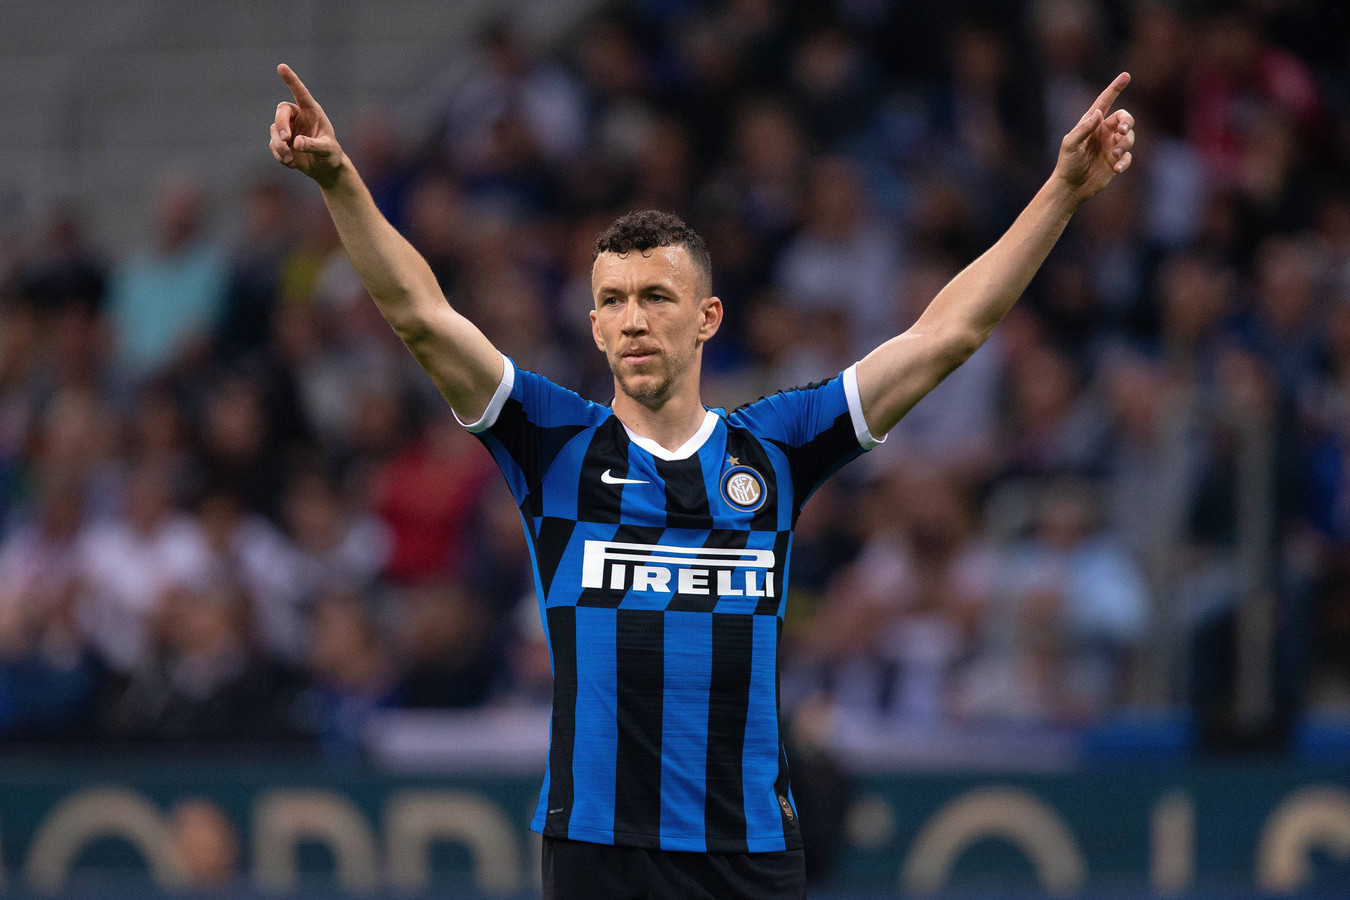 Ivan Perisic in het shirt van Internazionale.